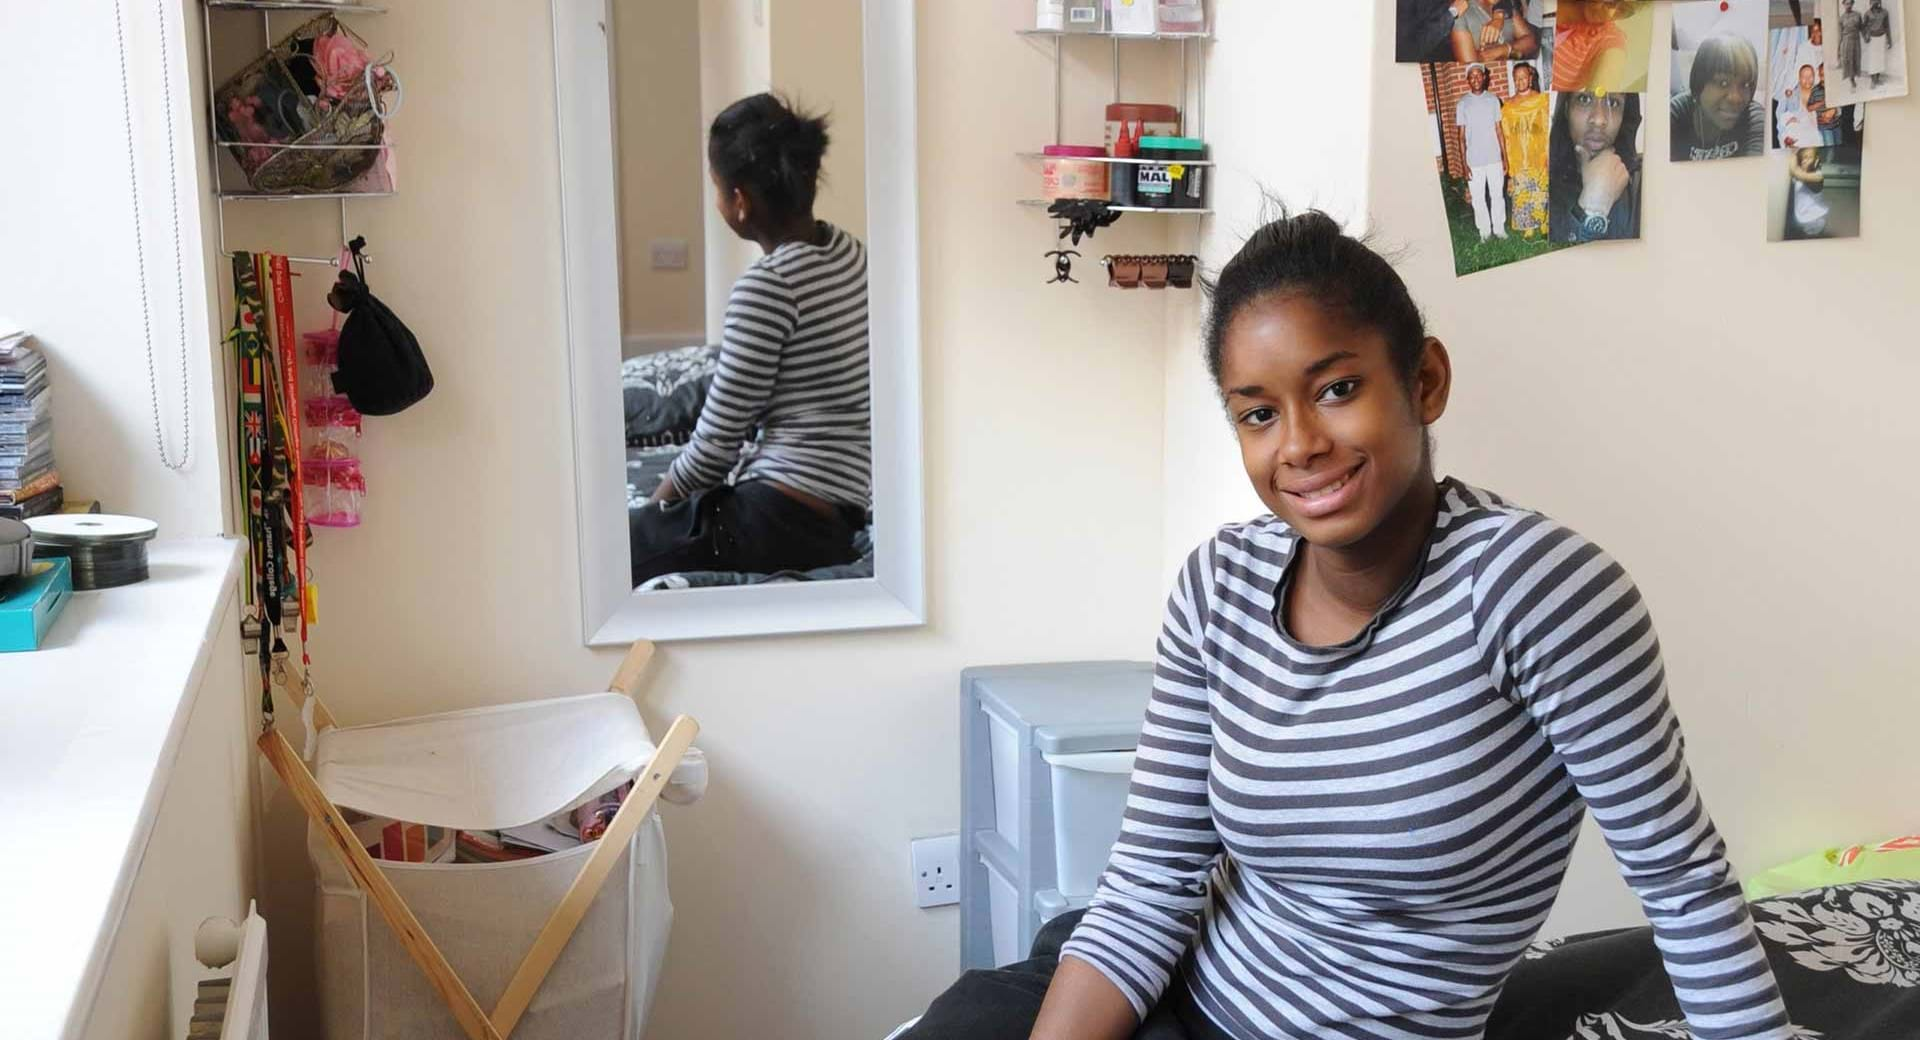 Smiling young woman in a room provided by Centrepoint's housing services